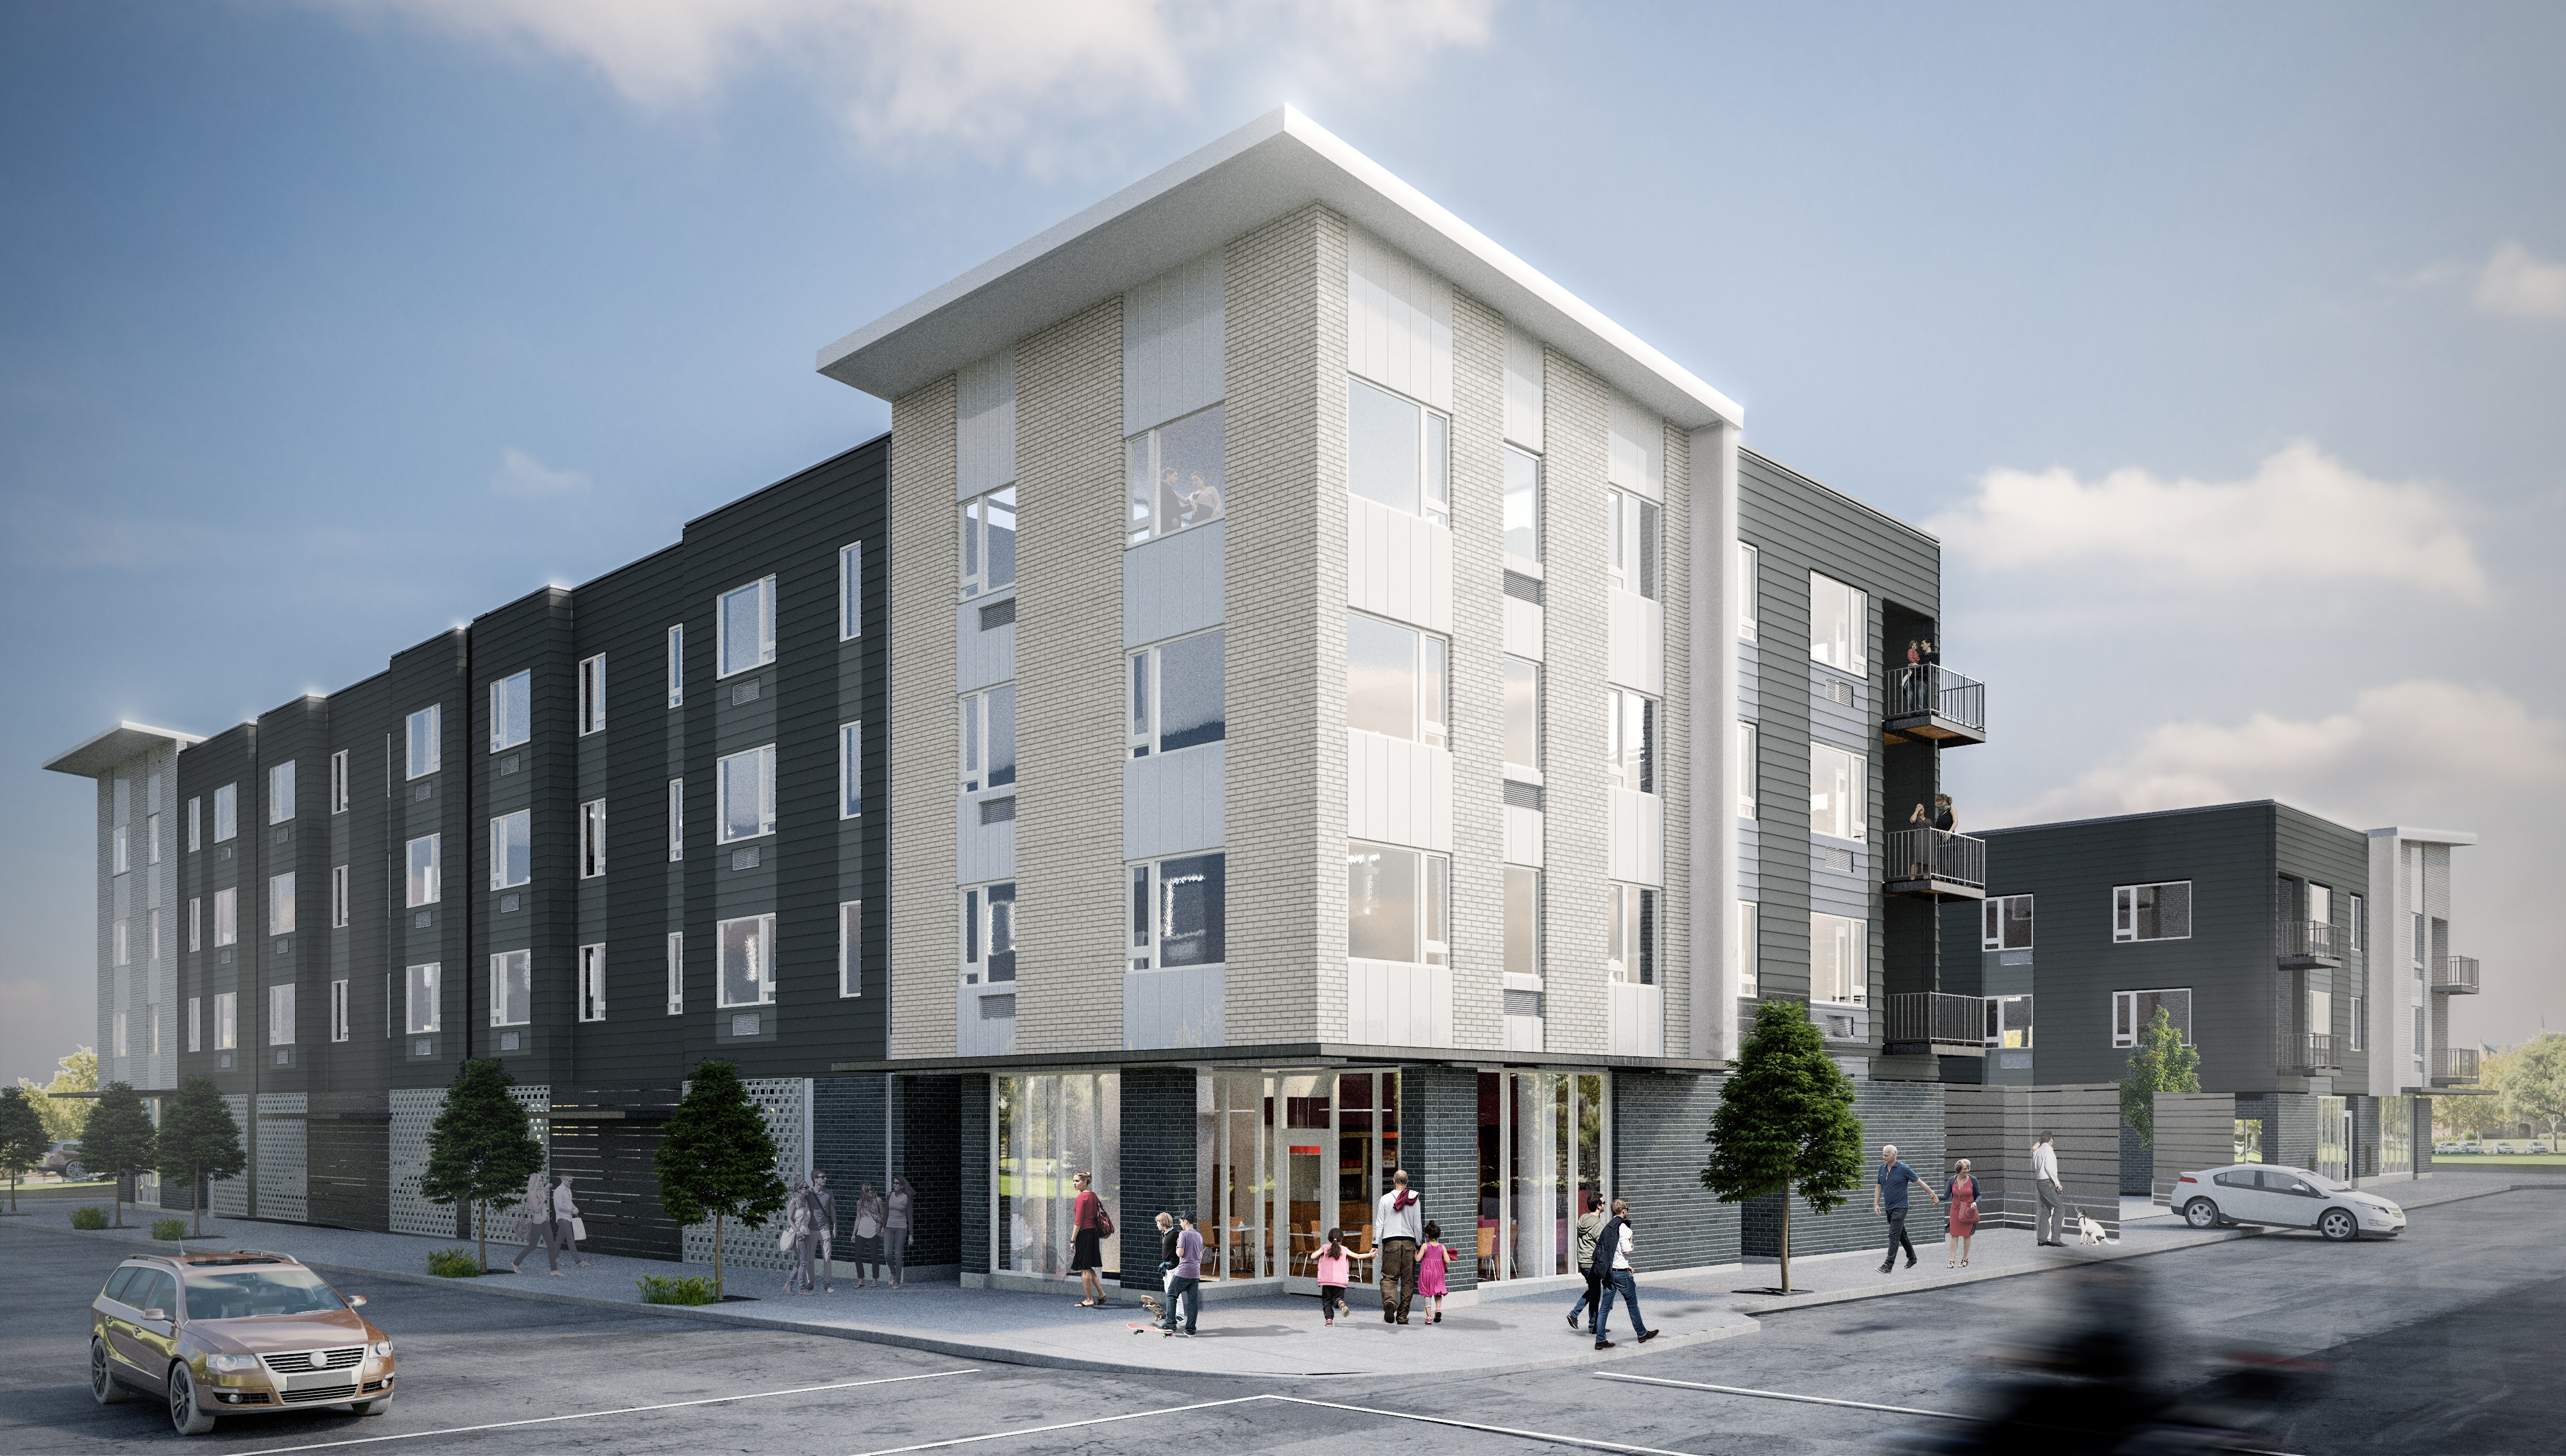 New 78 unit apartment will include downtown Beaverton s first bike